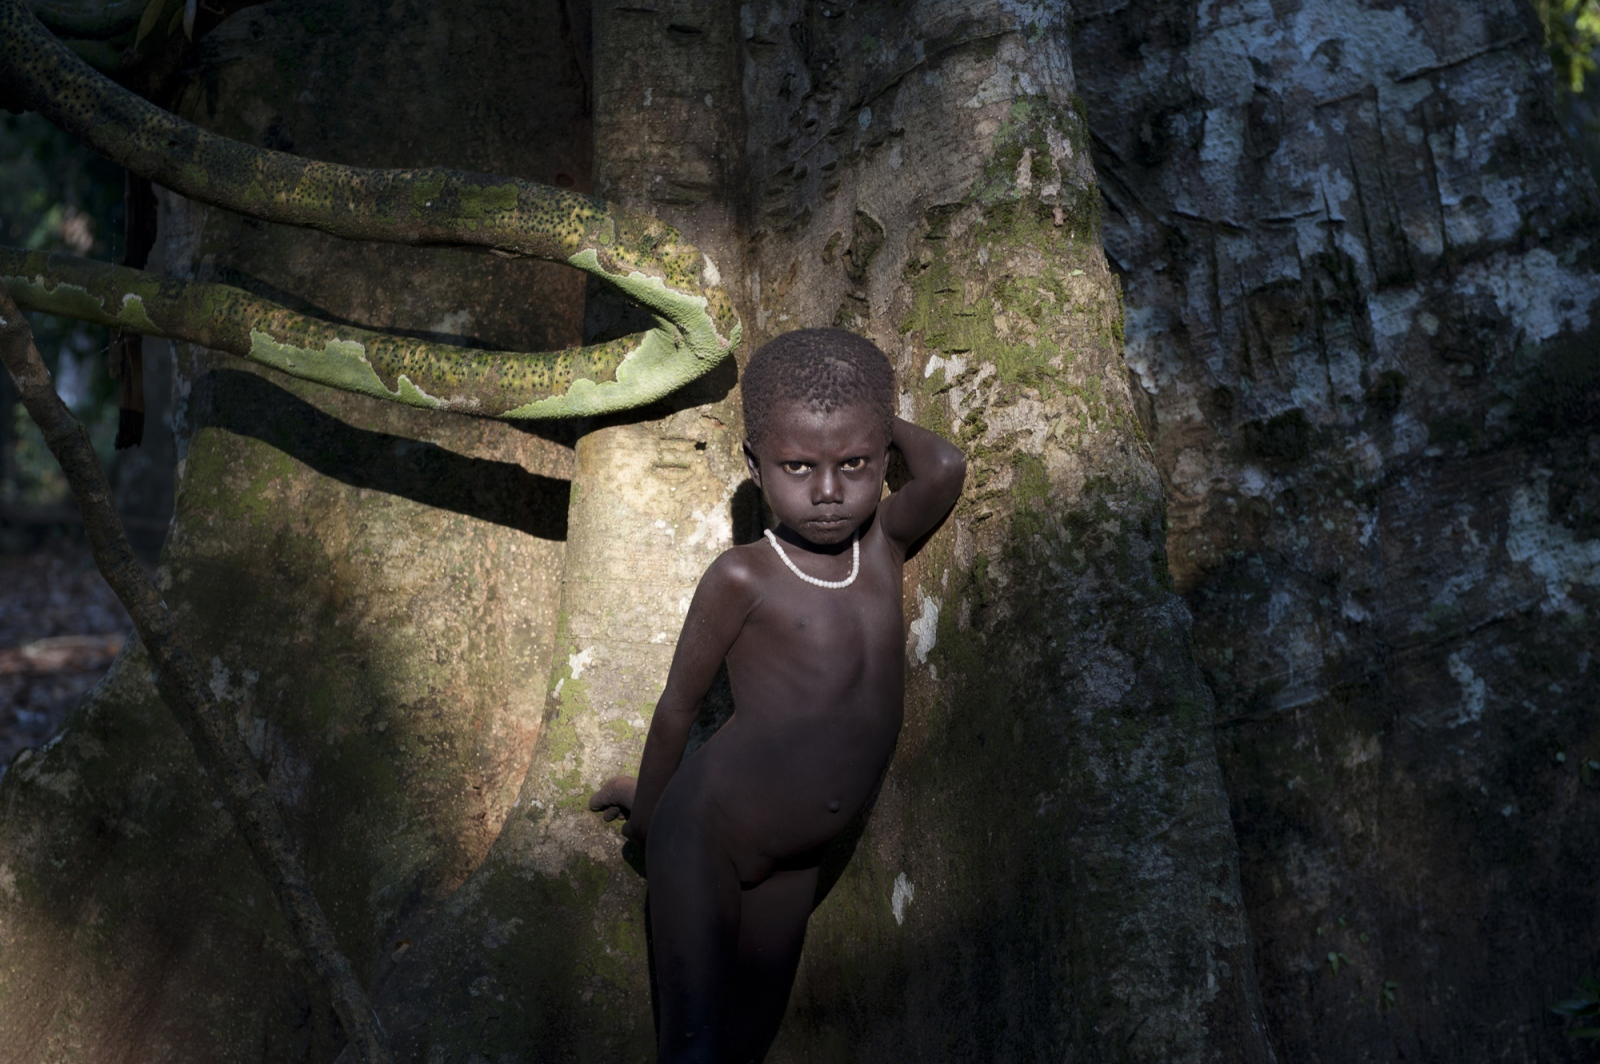 Art and Documentary Photography - Loading jarawa_beilvert_girl_standing_near_a_tree.jpg